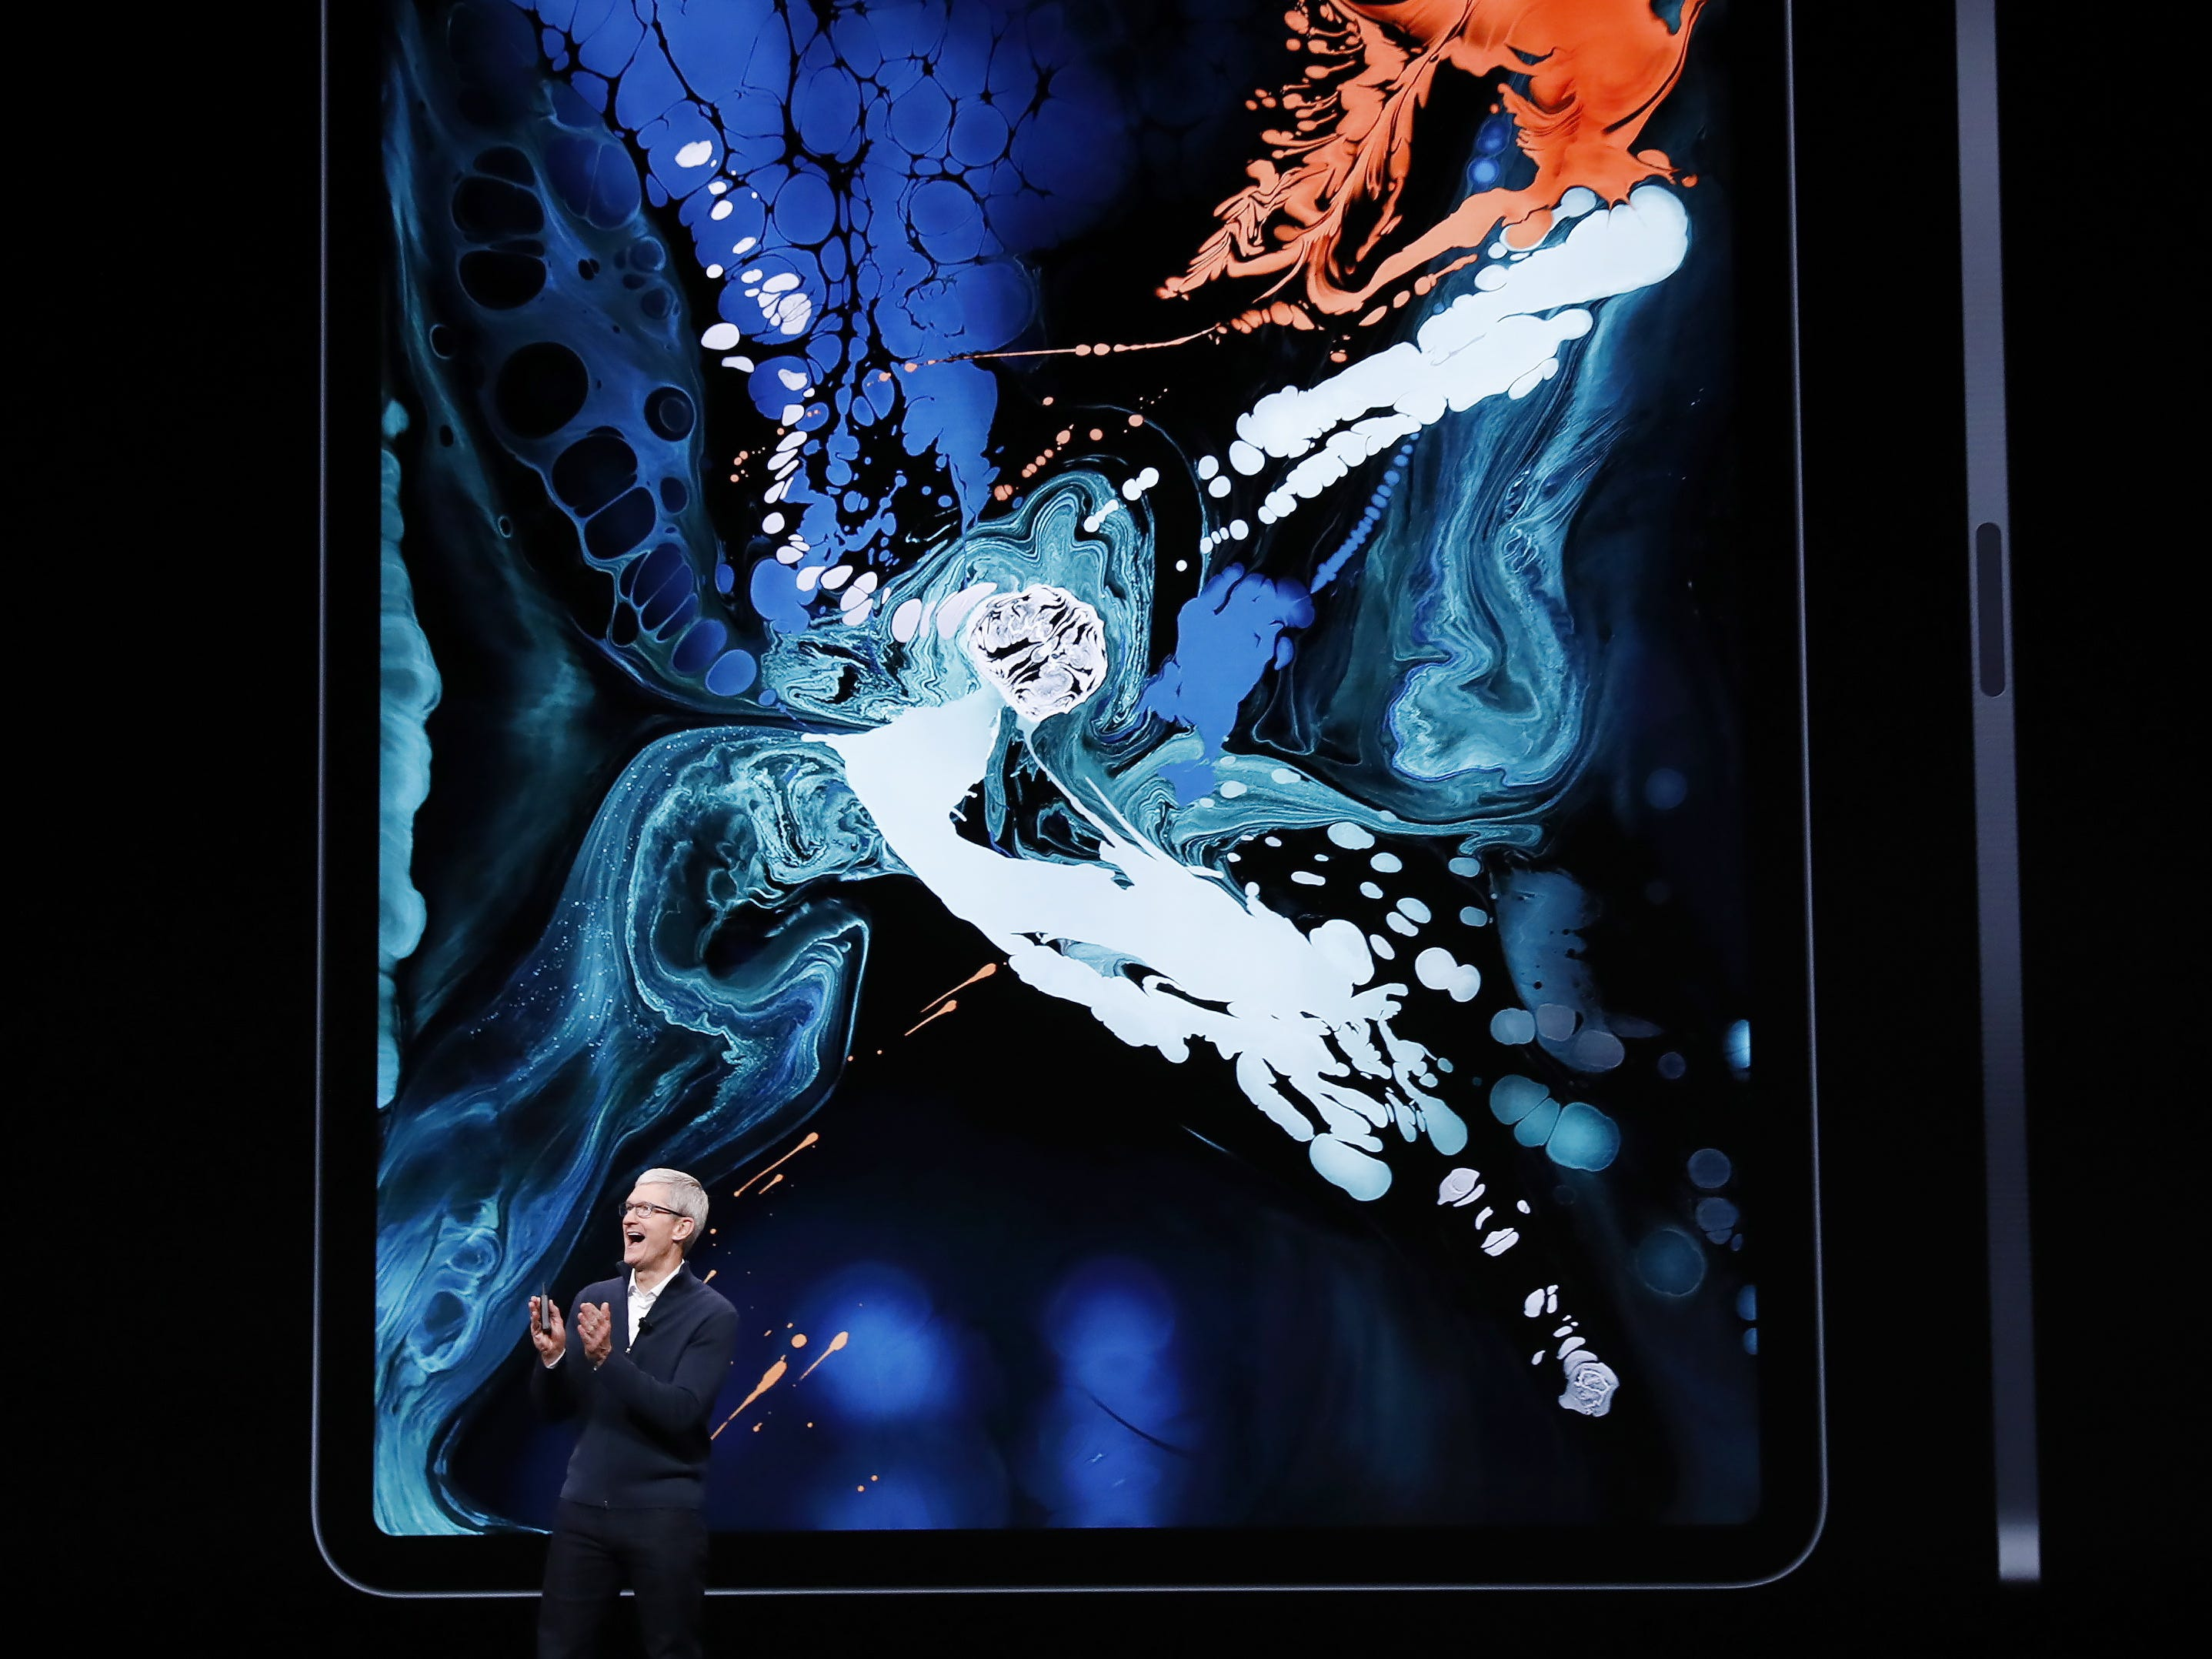 Apple CEO Tim Cook speaks about the new iPad Pro during an Apple special event at the Howard Gilman Opera House at the Brooklyn Academy of Music before the start of an Apple event in New York, Tuesday, Oct. 30, 2018.